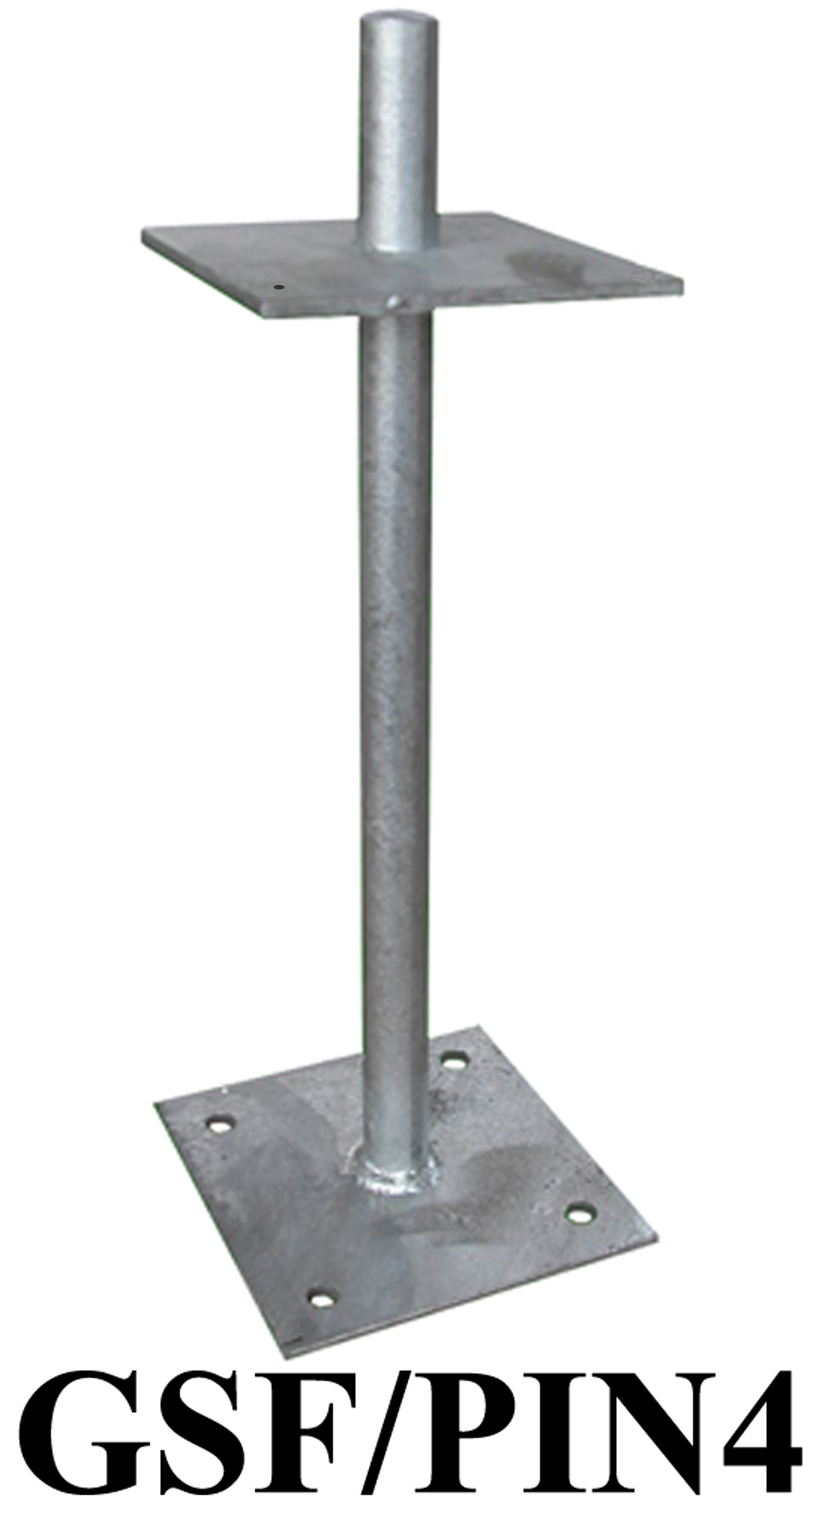 Galvanised Steel Flanged Pin 420mm high to recieve post size 150mm x 150mm GSF-PIN4